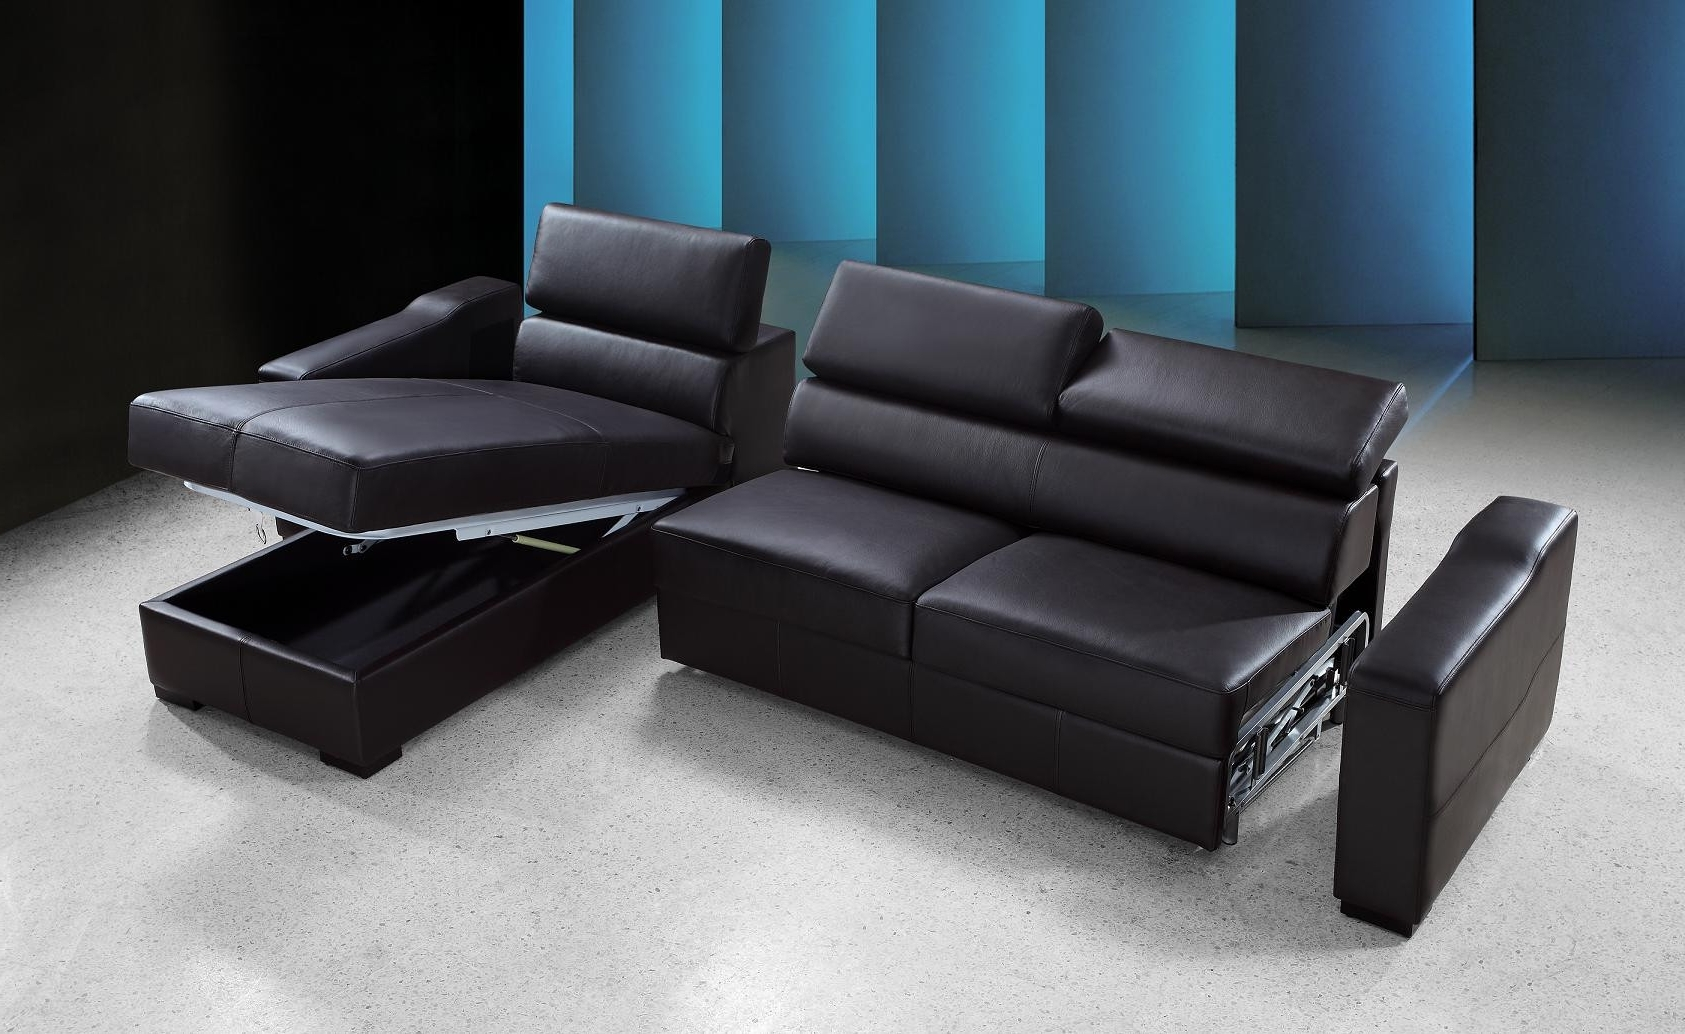 Sectional Sofas With Storage In Well Known Reversible Espresso Leather Sectional Sofa Bed W/ Storage (View 5 of 20)